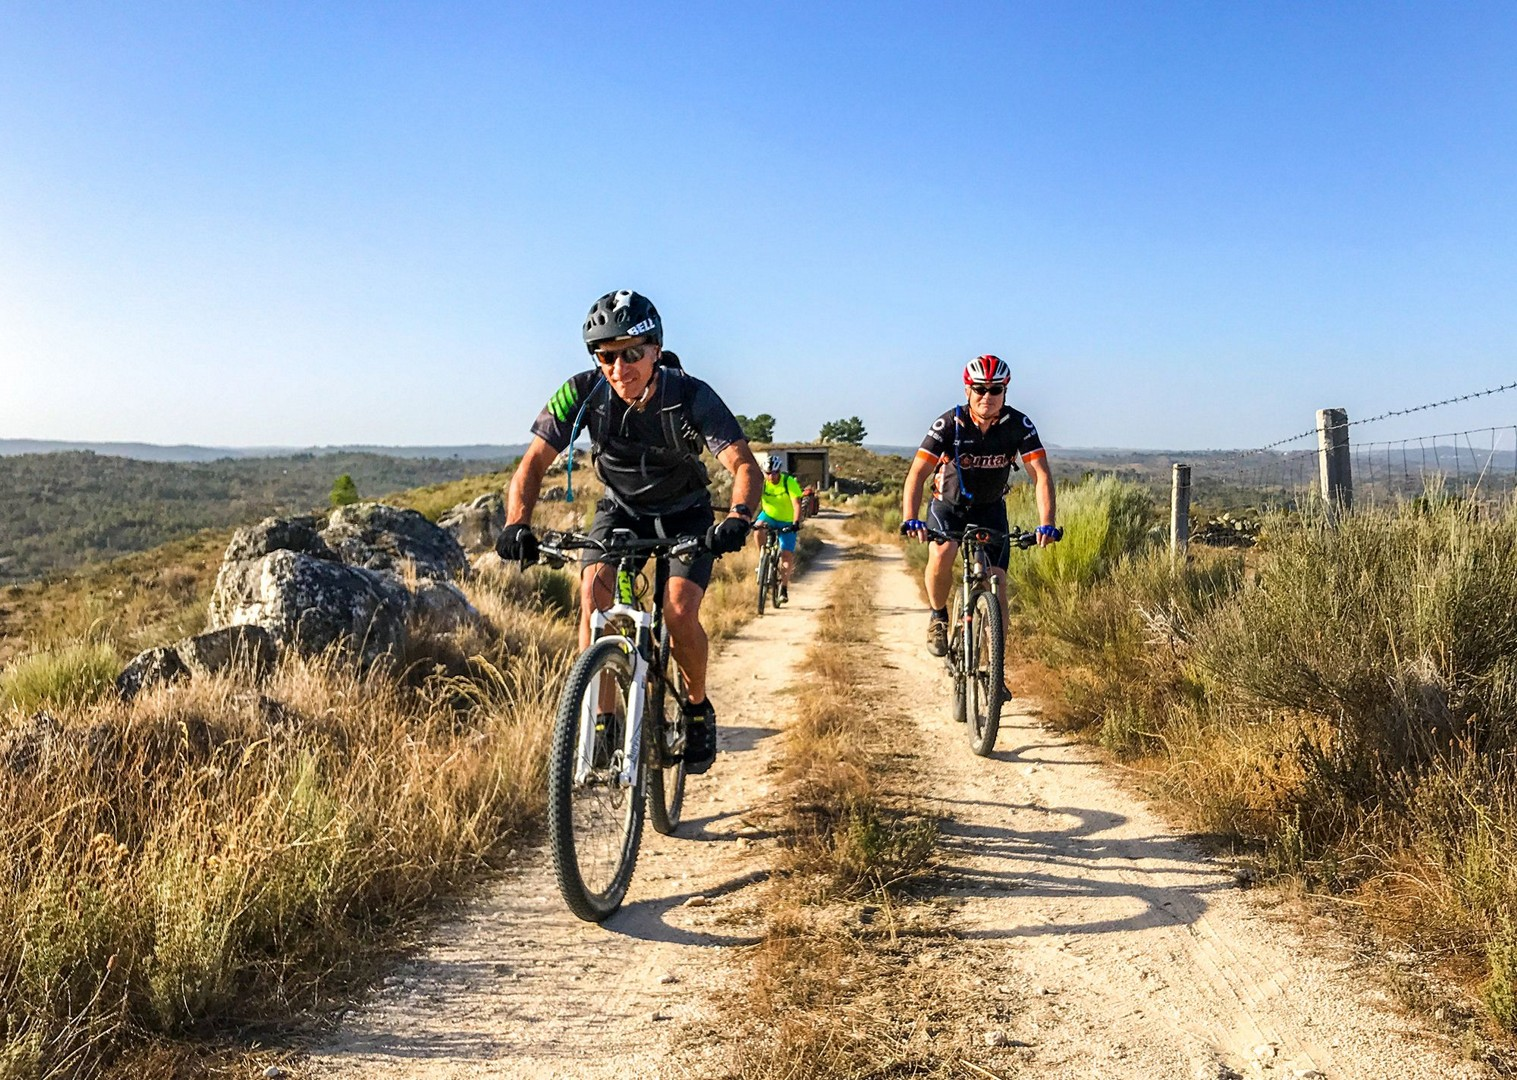 guided-mountain-bike-holiday-roman-trails-saddle-skedaddle.jpg - Portugal - Roman Trails - Guided Mountain Bike Holiday - Mountain Biking